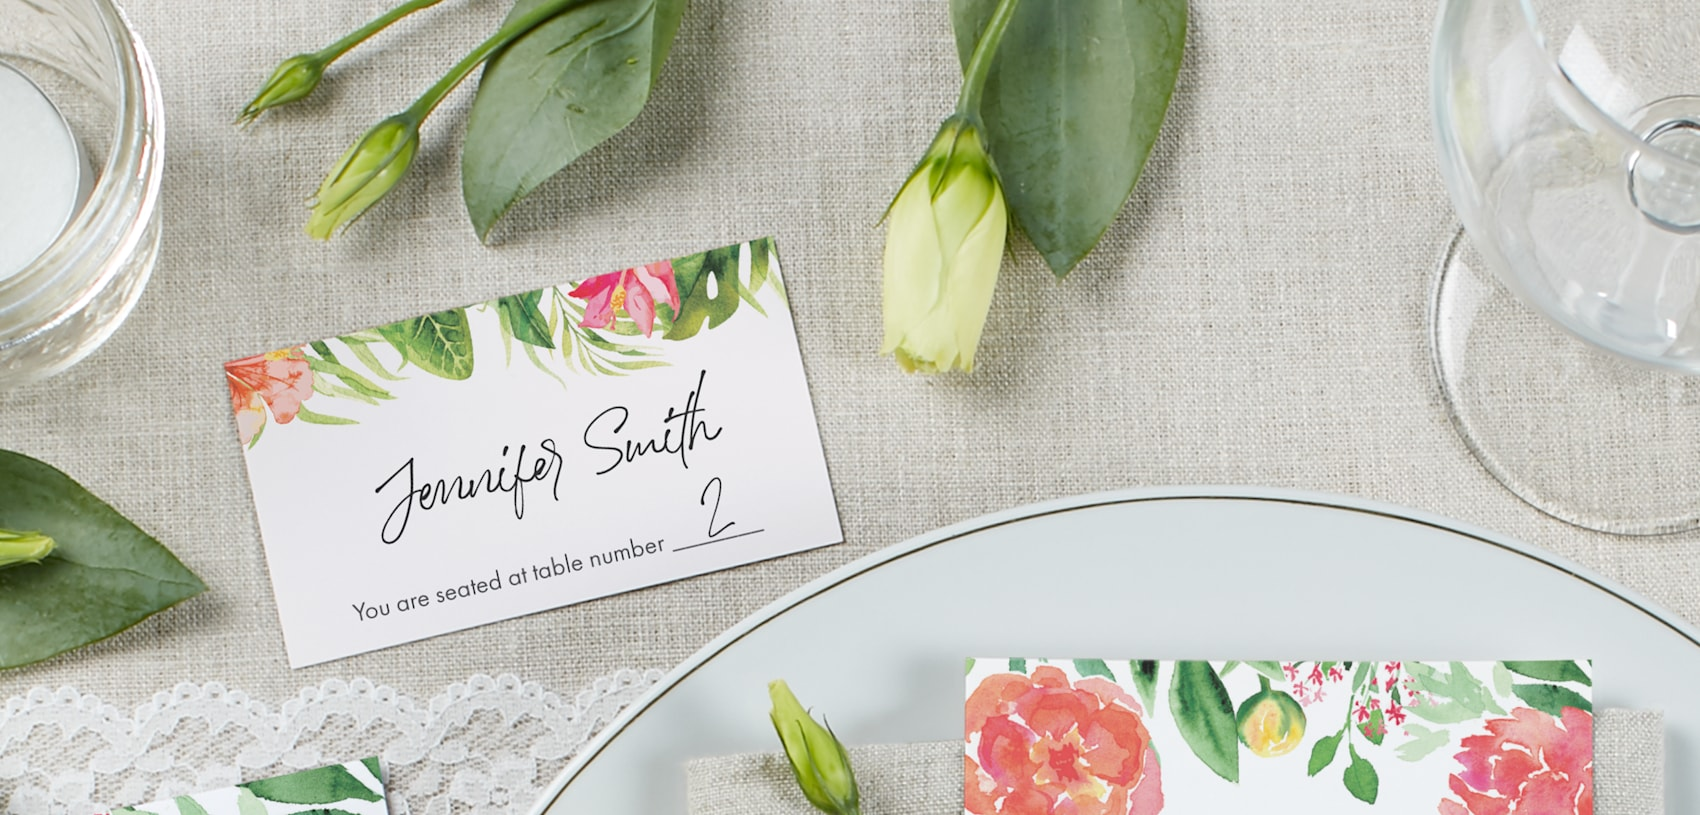 wedding name card with flower and leaf design